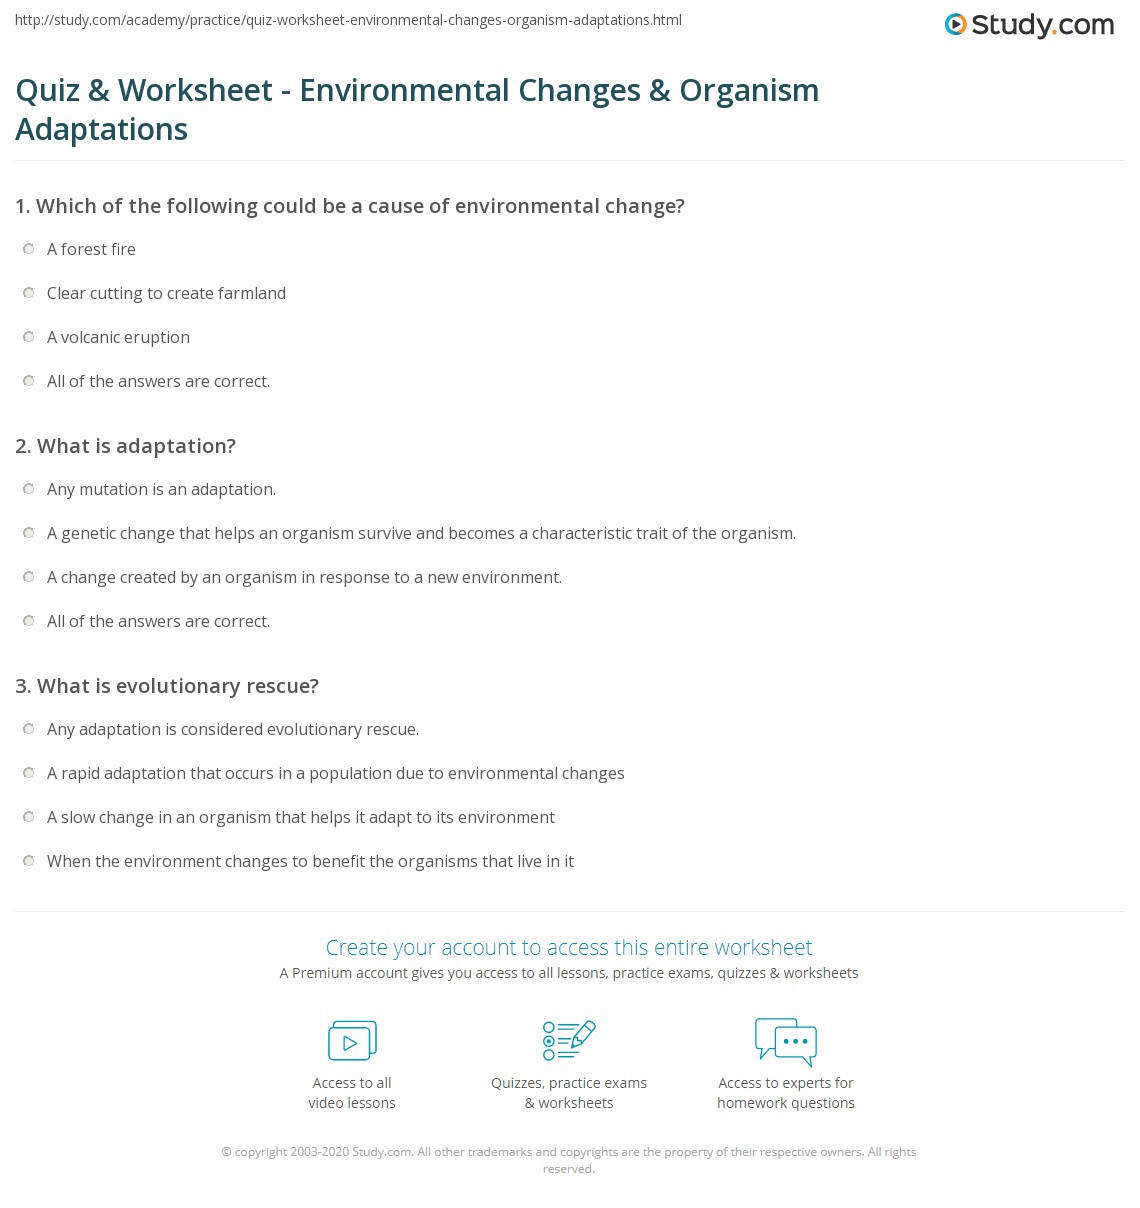 Adaptation Worksheets for Middle School Quiz & Worksheet Environmental Changes & organism